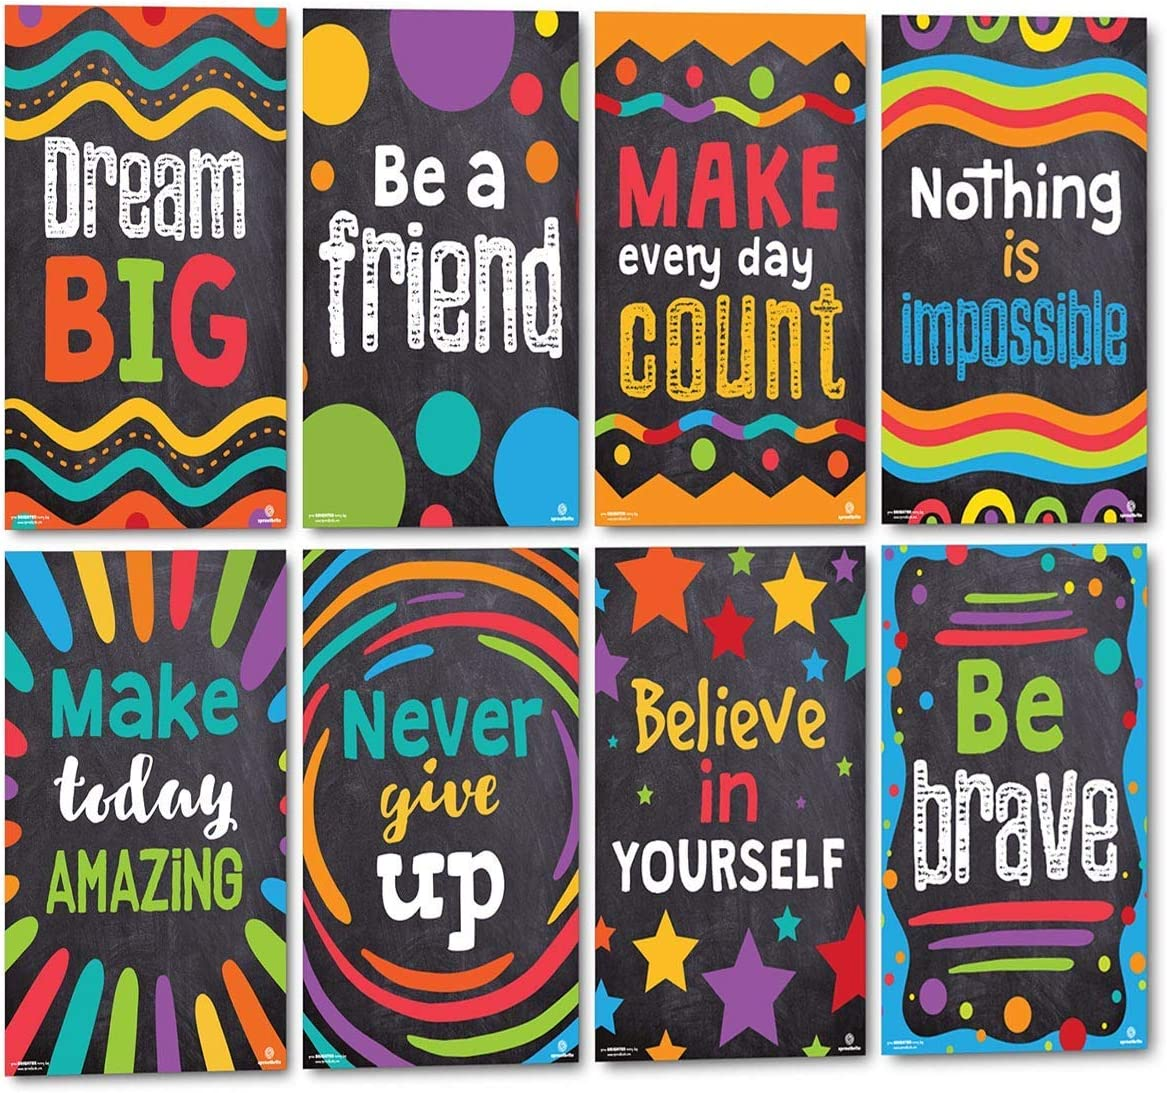 Sproutbrite Classroom Decorations - Motivational Posters for Teachers - inspirational Bulletin Board and Wall Decor for Pre School, Elementary and Middle School